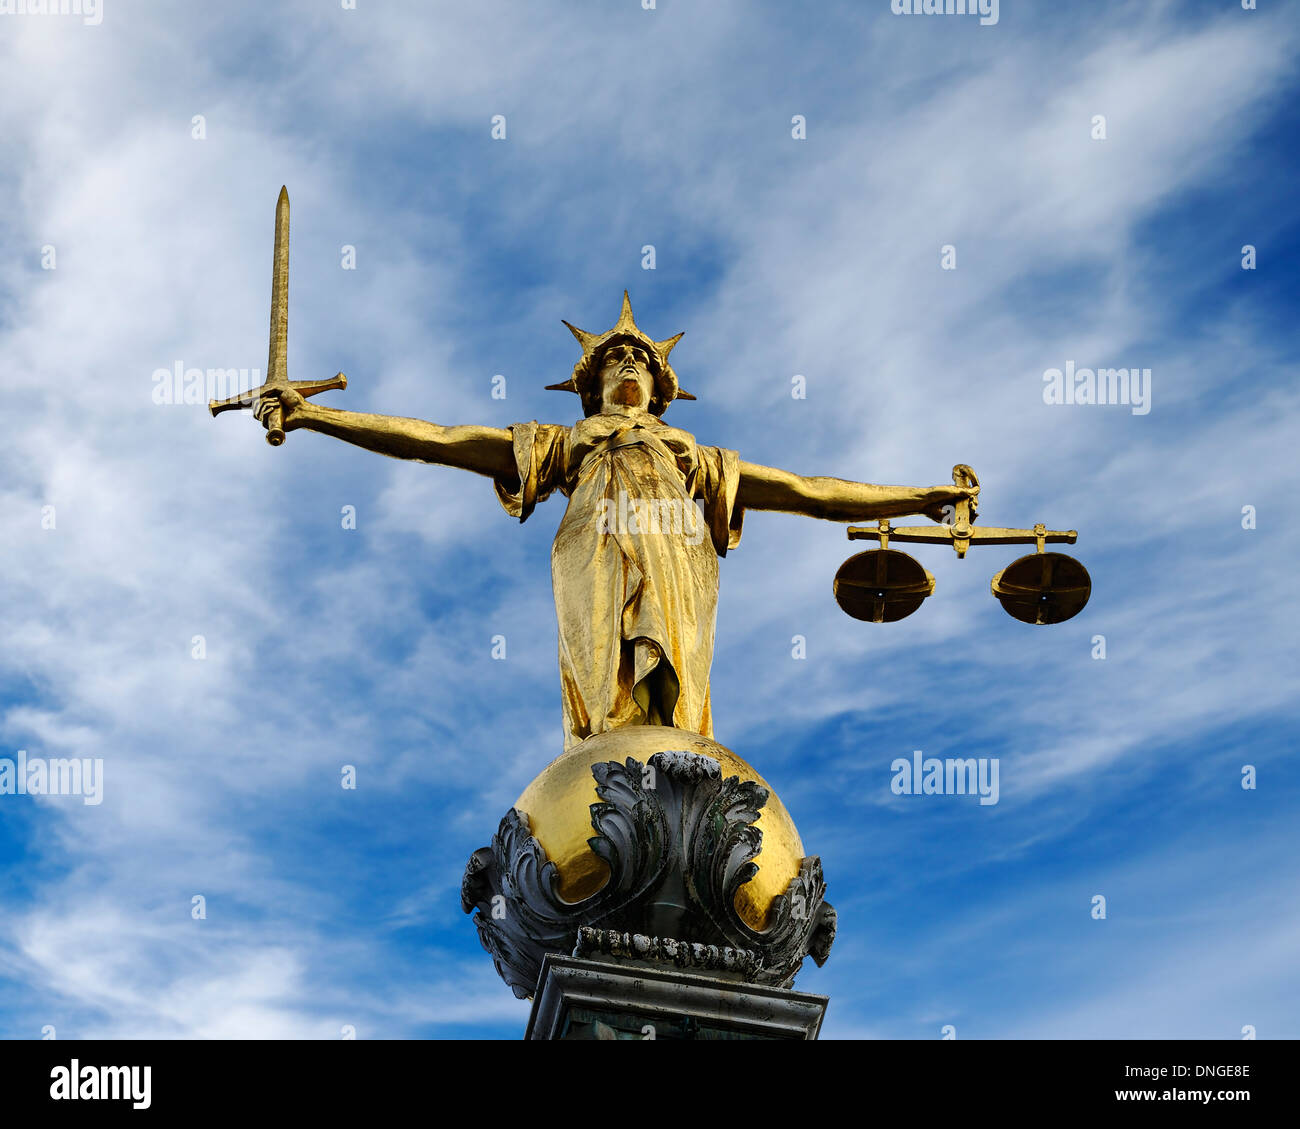 Old Bailey Statue of Lady Justice. Central Criminal Court, London, United Kingdom. - Stock Image